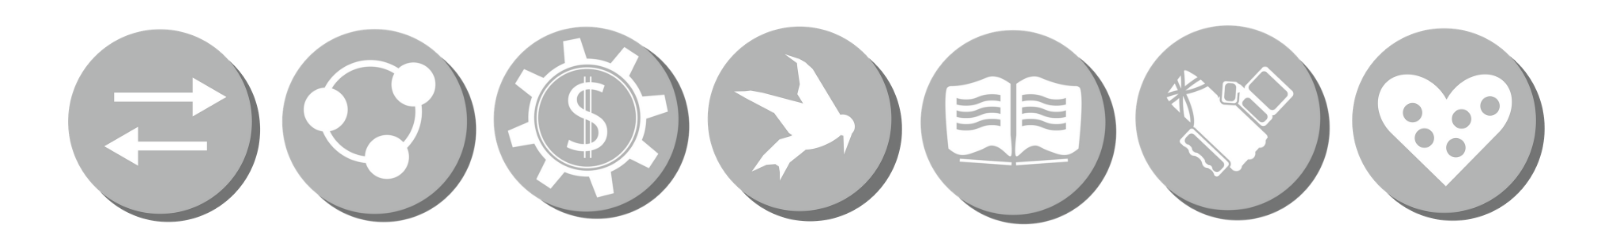 icons representing the seven cooperative principles